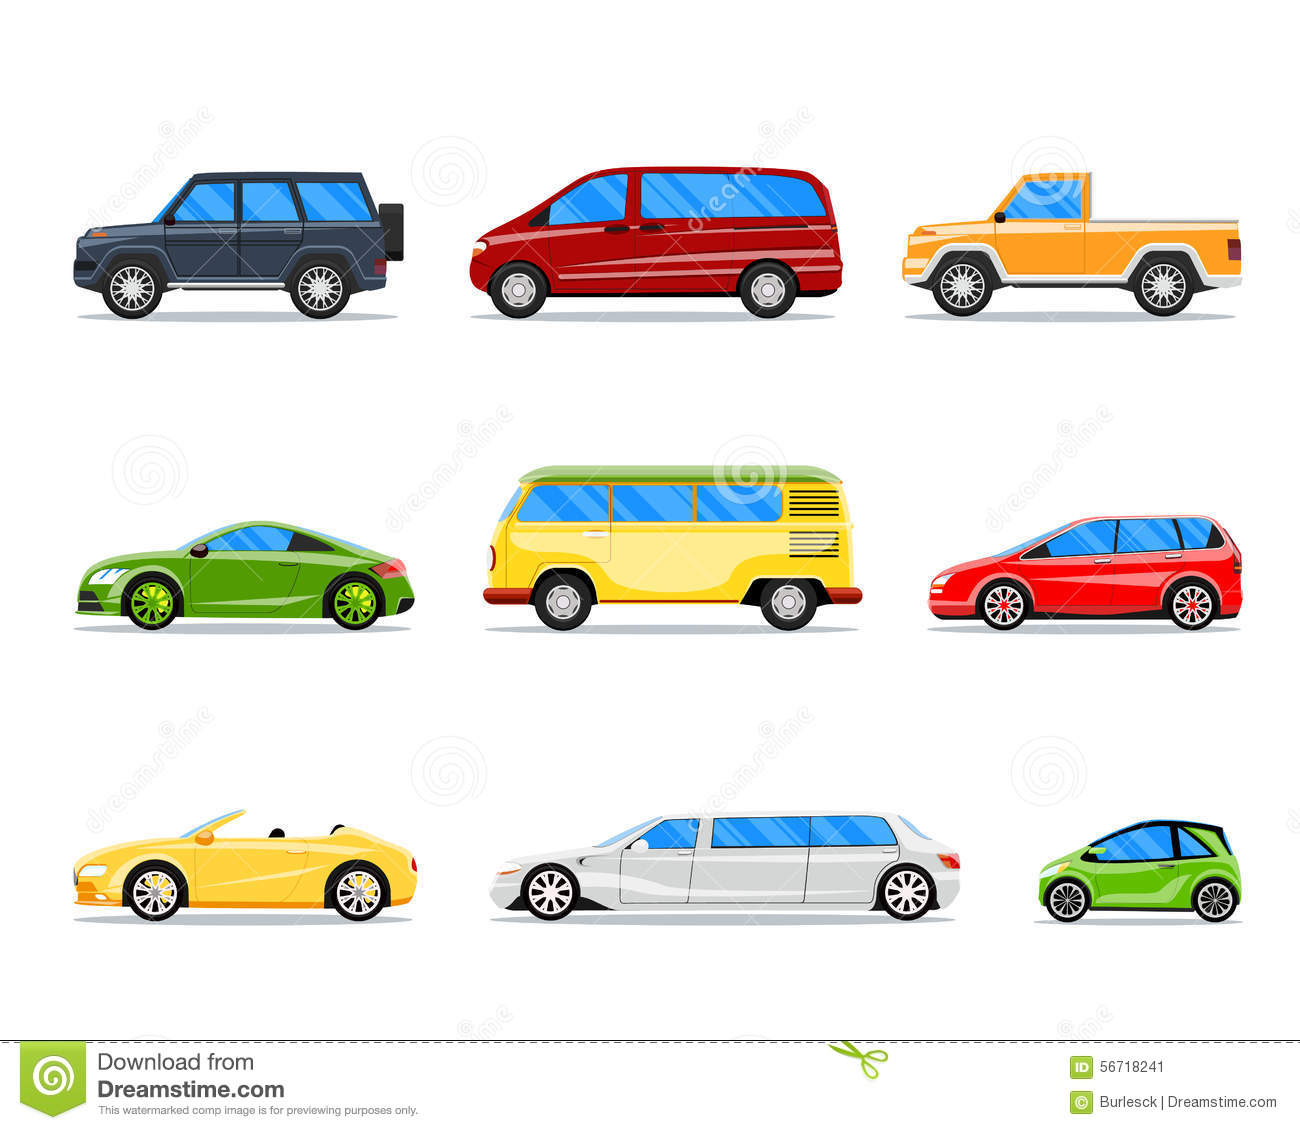 vehicle diagram clip art york heat pump control wiring vector car icons in flat style stock illustration